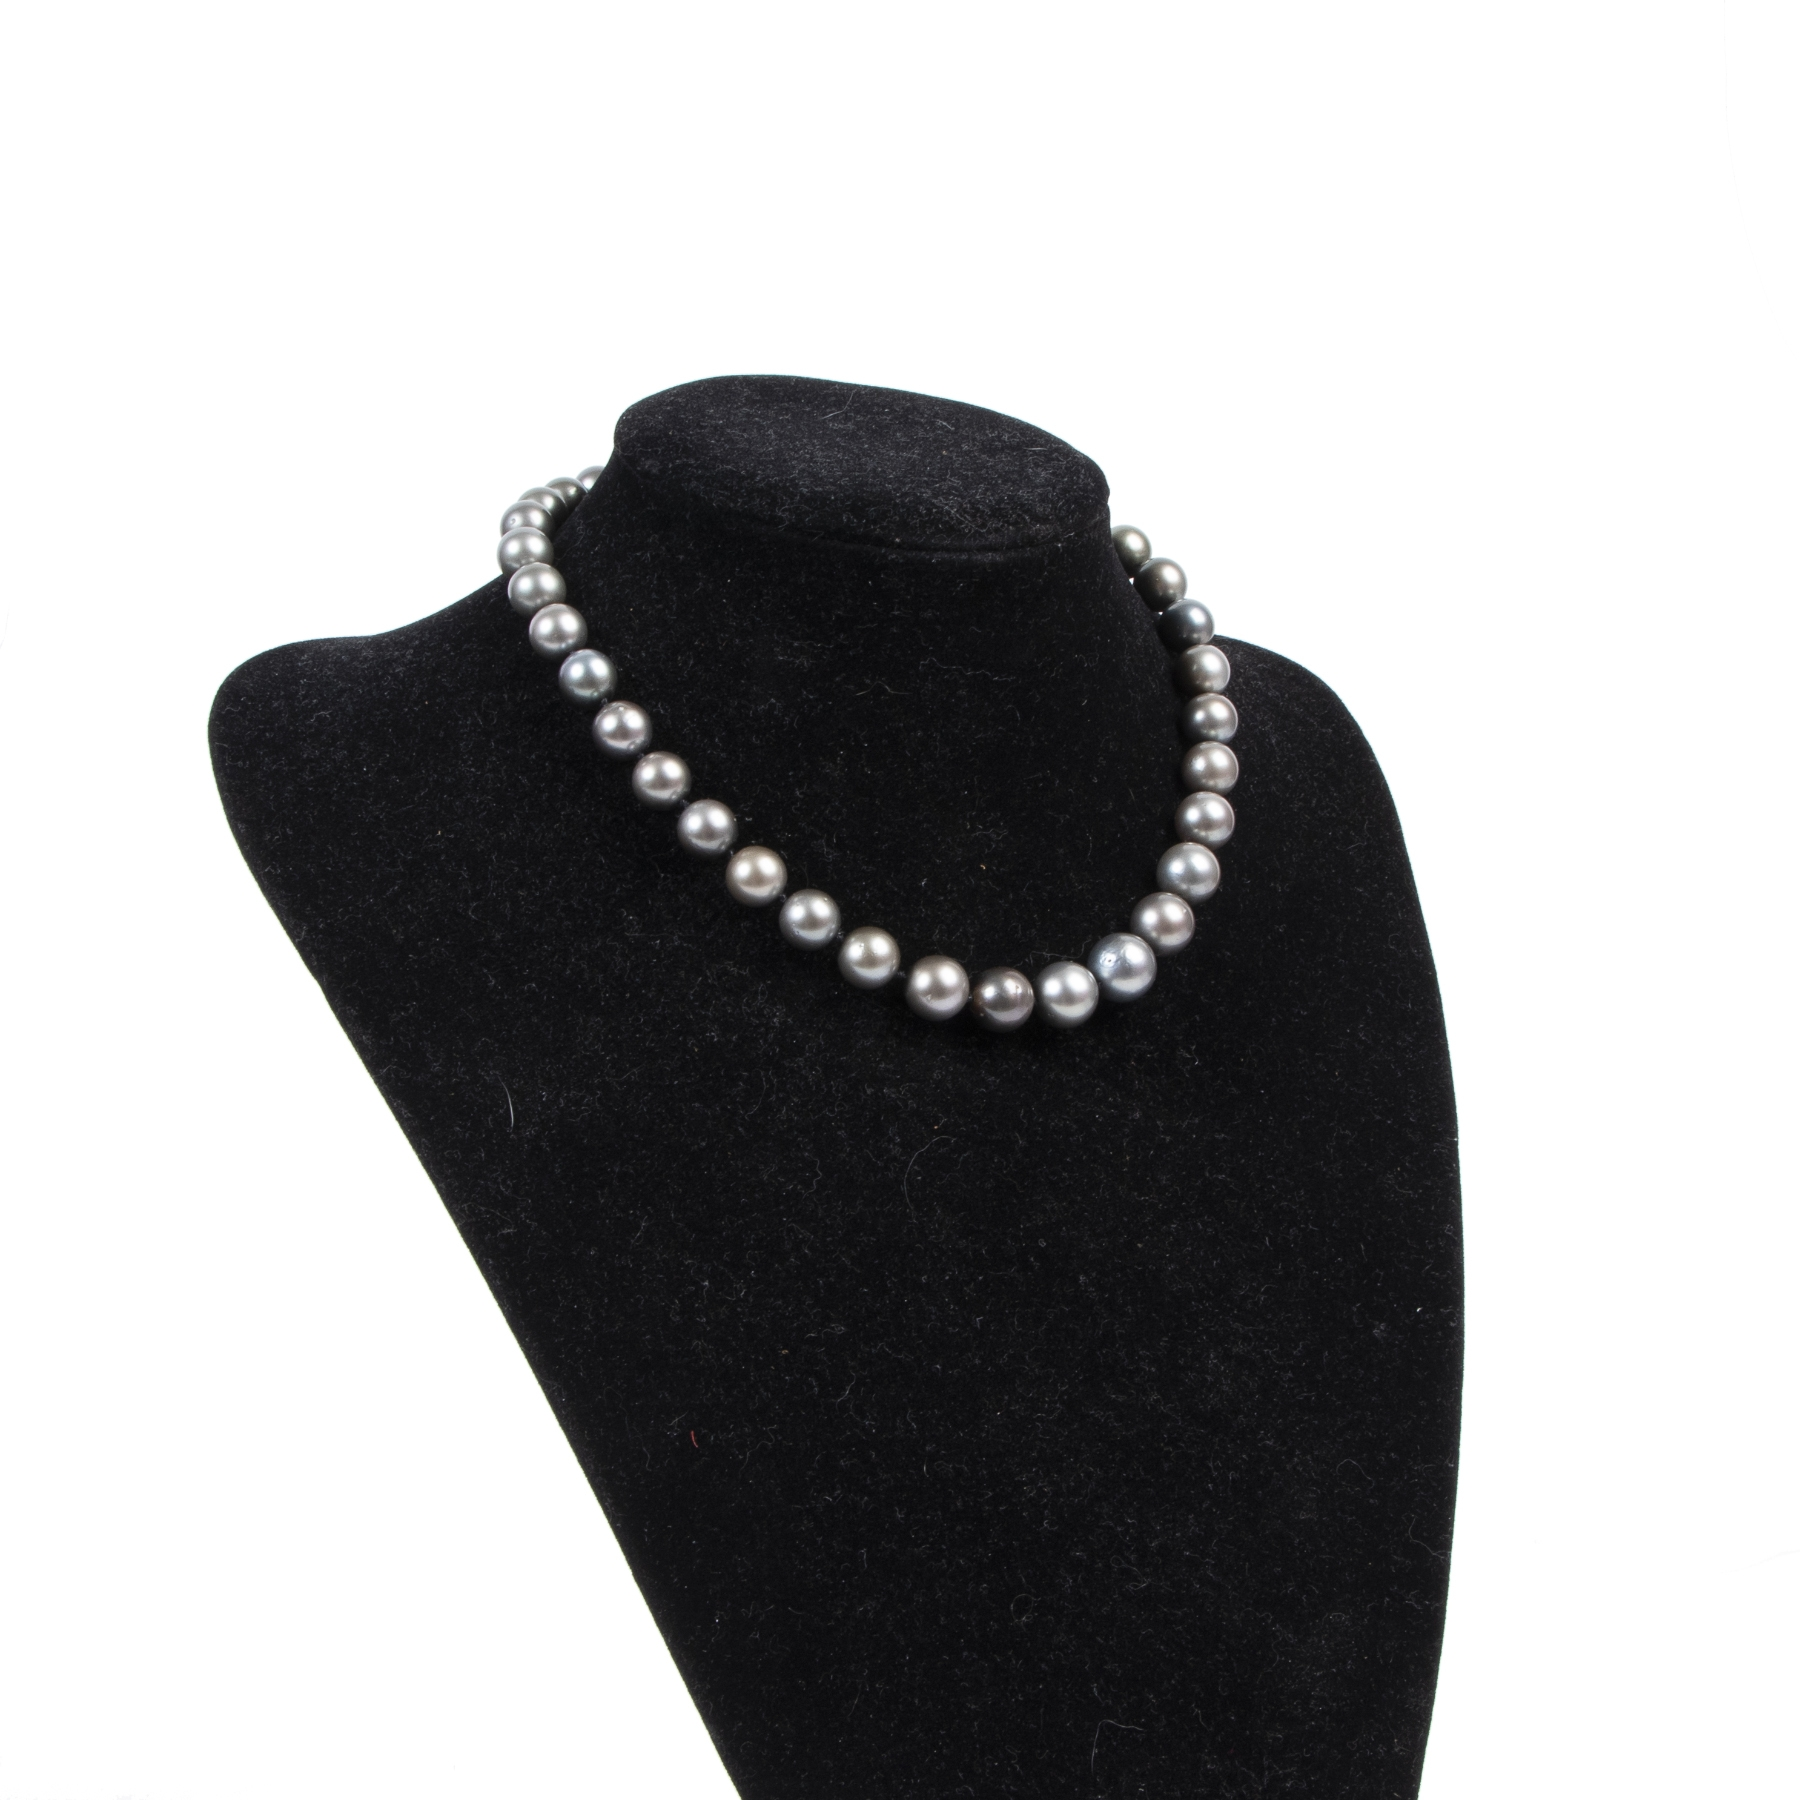 Authentic secondhand Bulgari Grey Pearl Necklace designer accessories fashion luxury vintage webshop safe secure online shopping